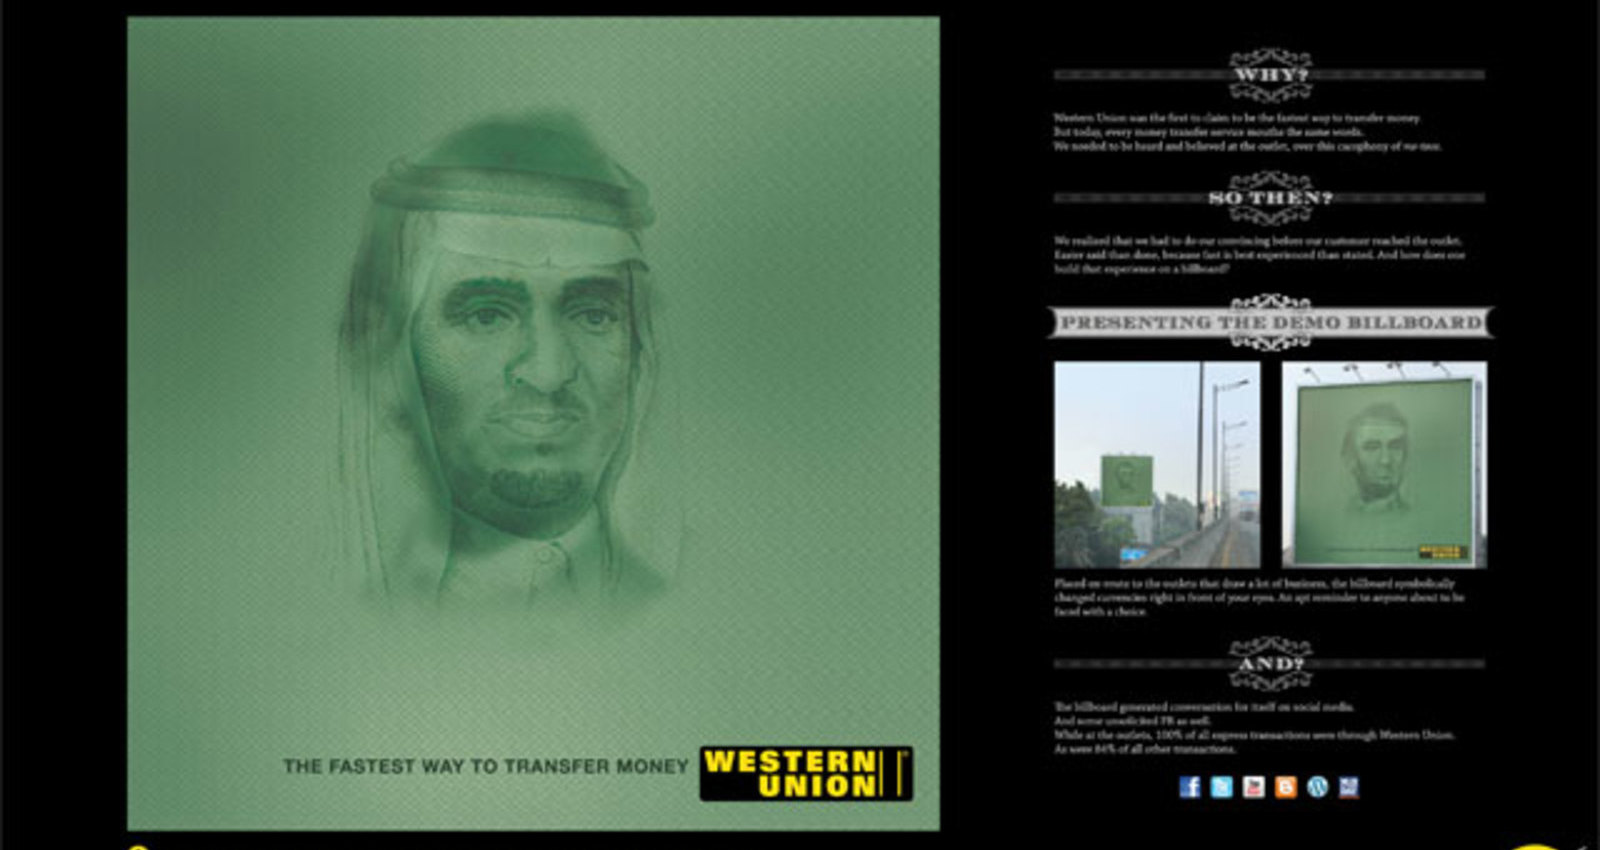 Western Union Demo Billboards